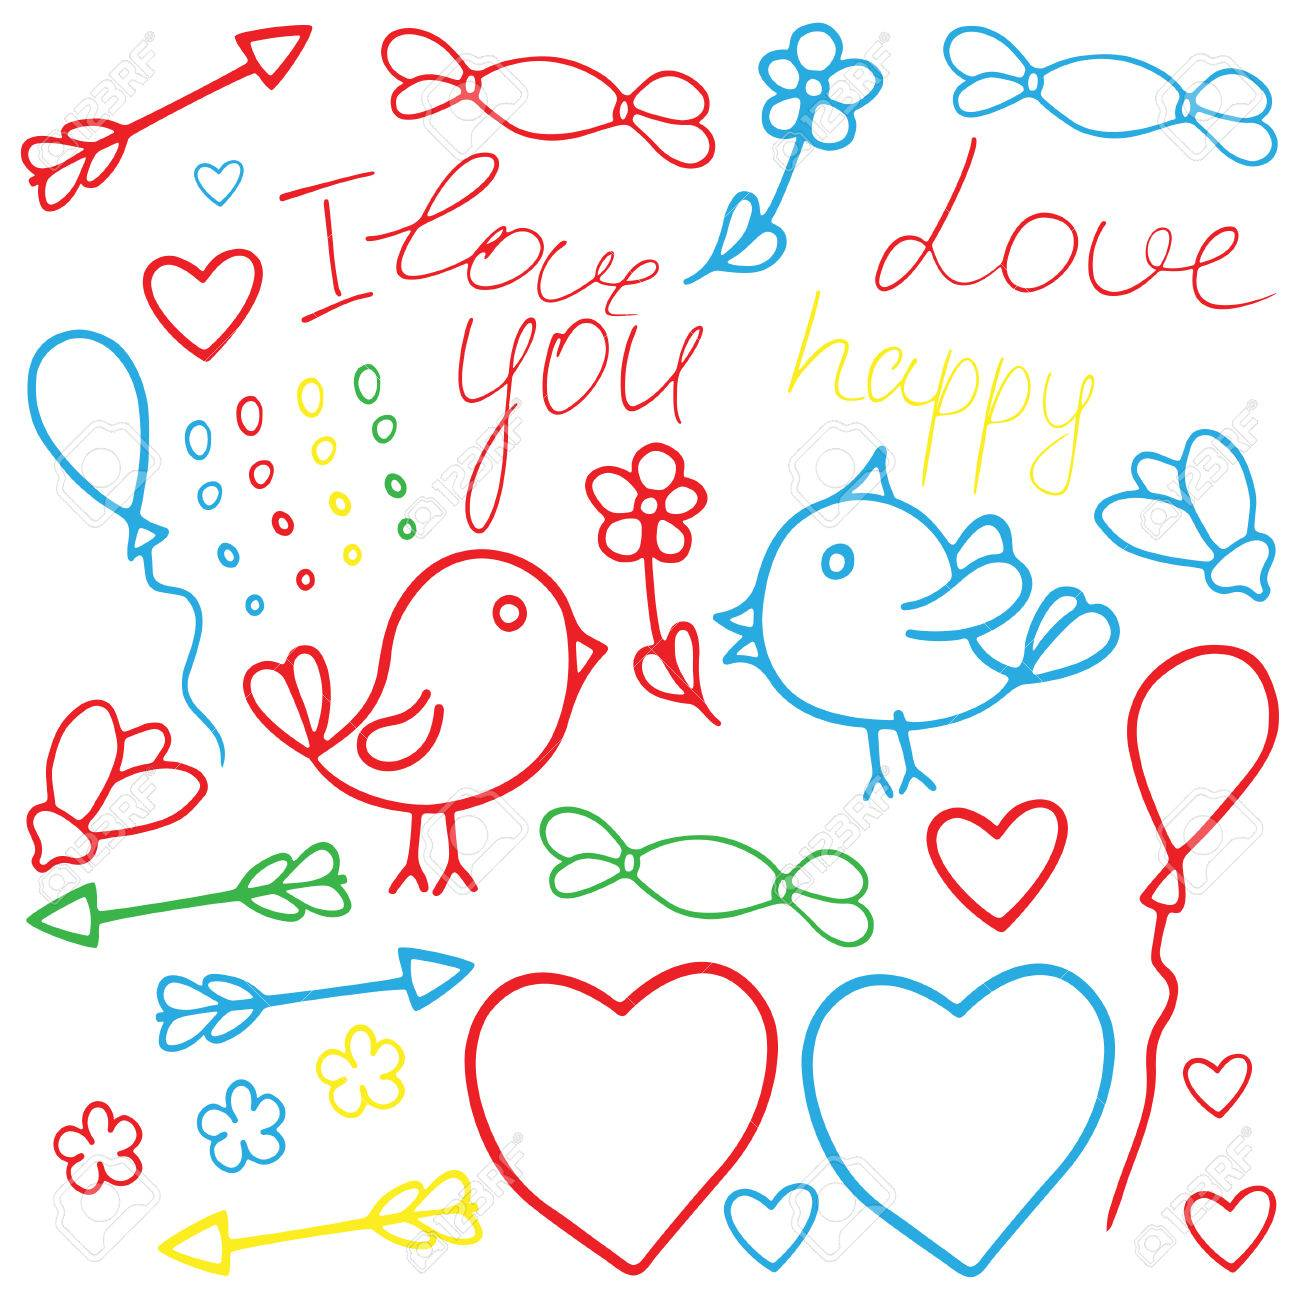 Love Valentine Art Romantic Hand Drawn Clip Art With Birds